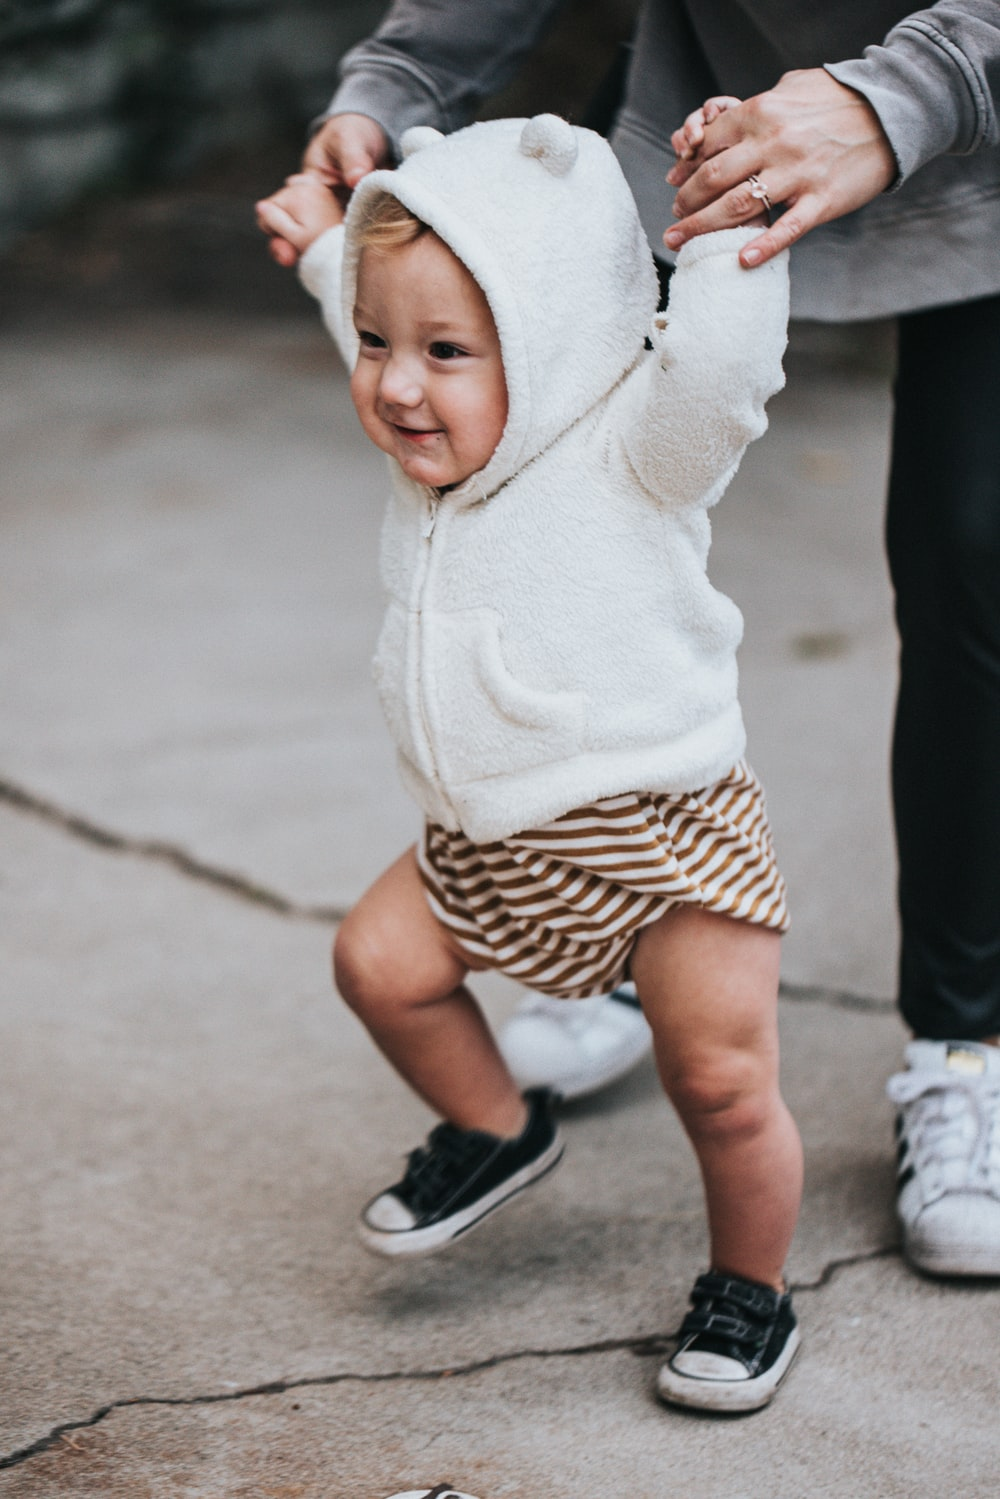 baby in white knit sweater and black and white polka dot shorts